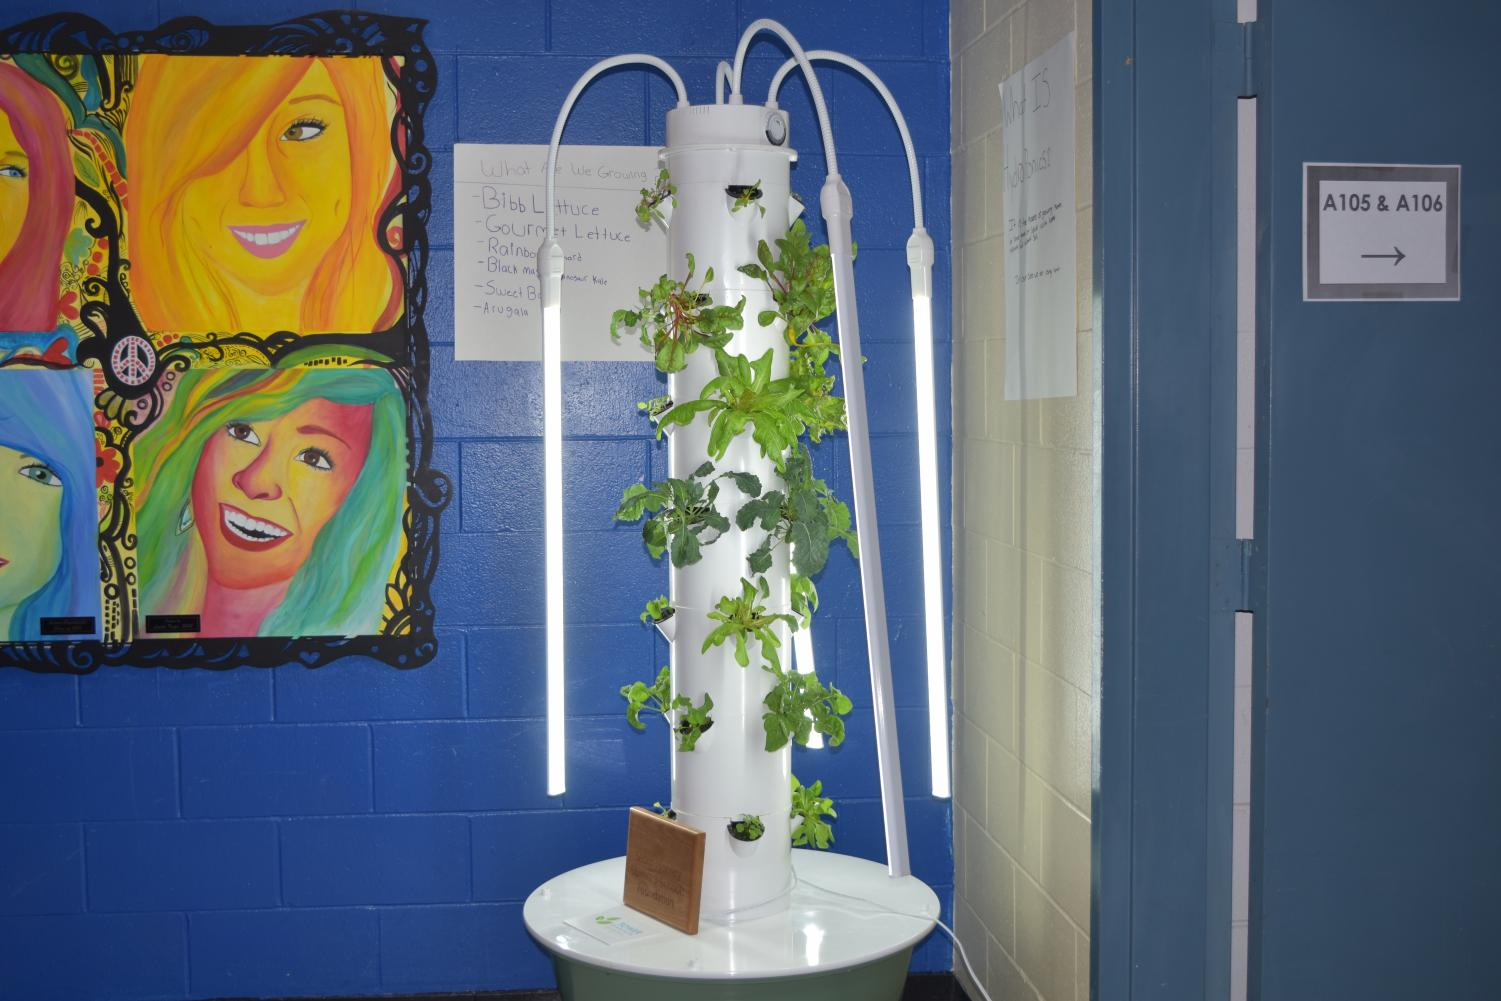 One of the plant stands illuminates the hallway by the office of SWHS.